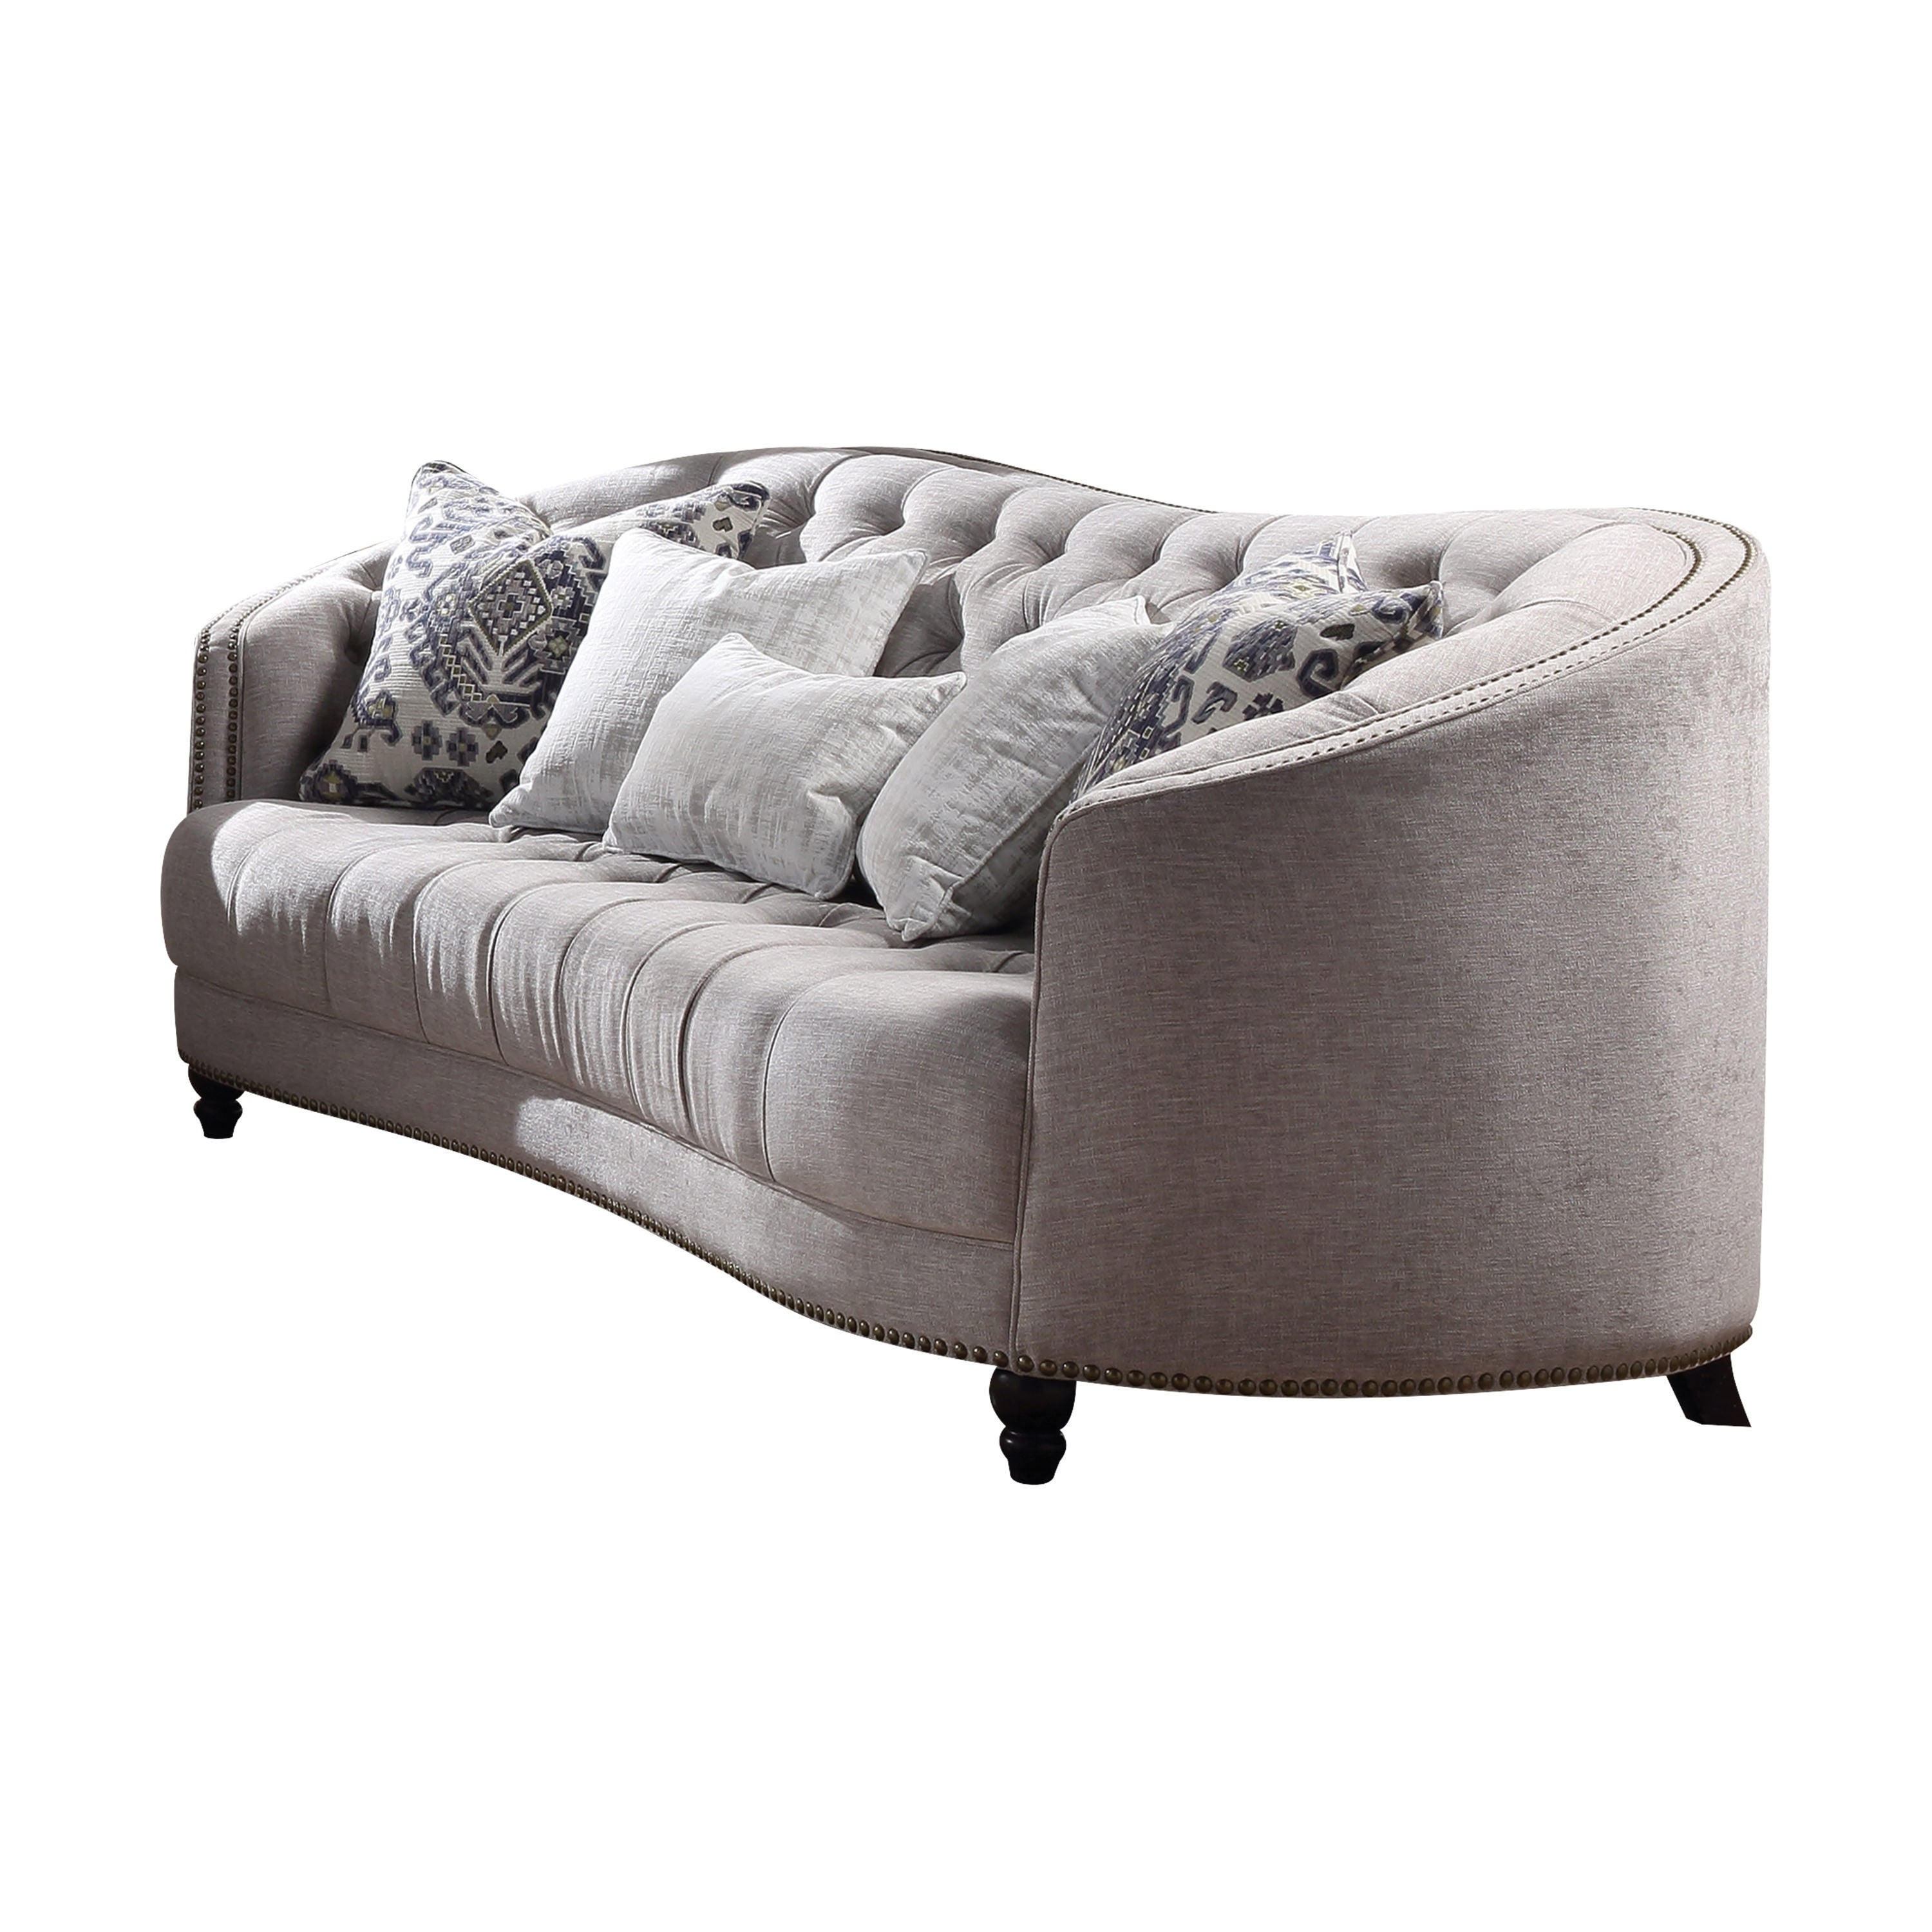 Acme Saira Down Feather Sofa In Light Gray Fabric   Free Shipping Today    Overstock.com   26337755